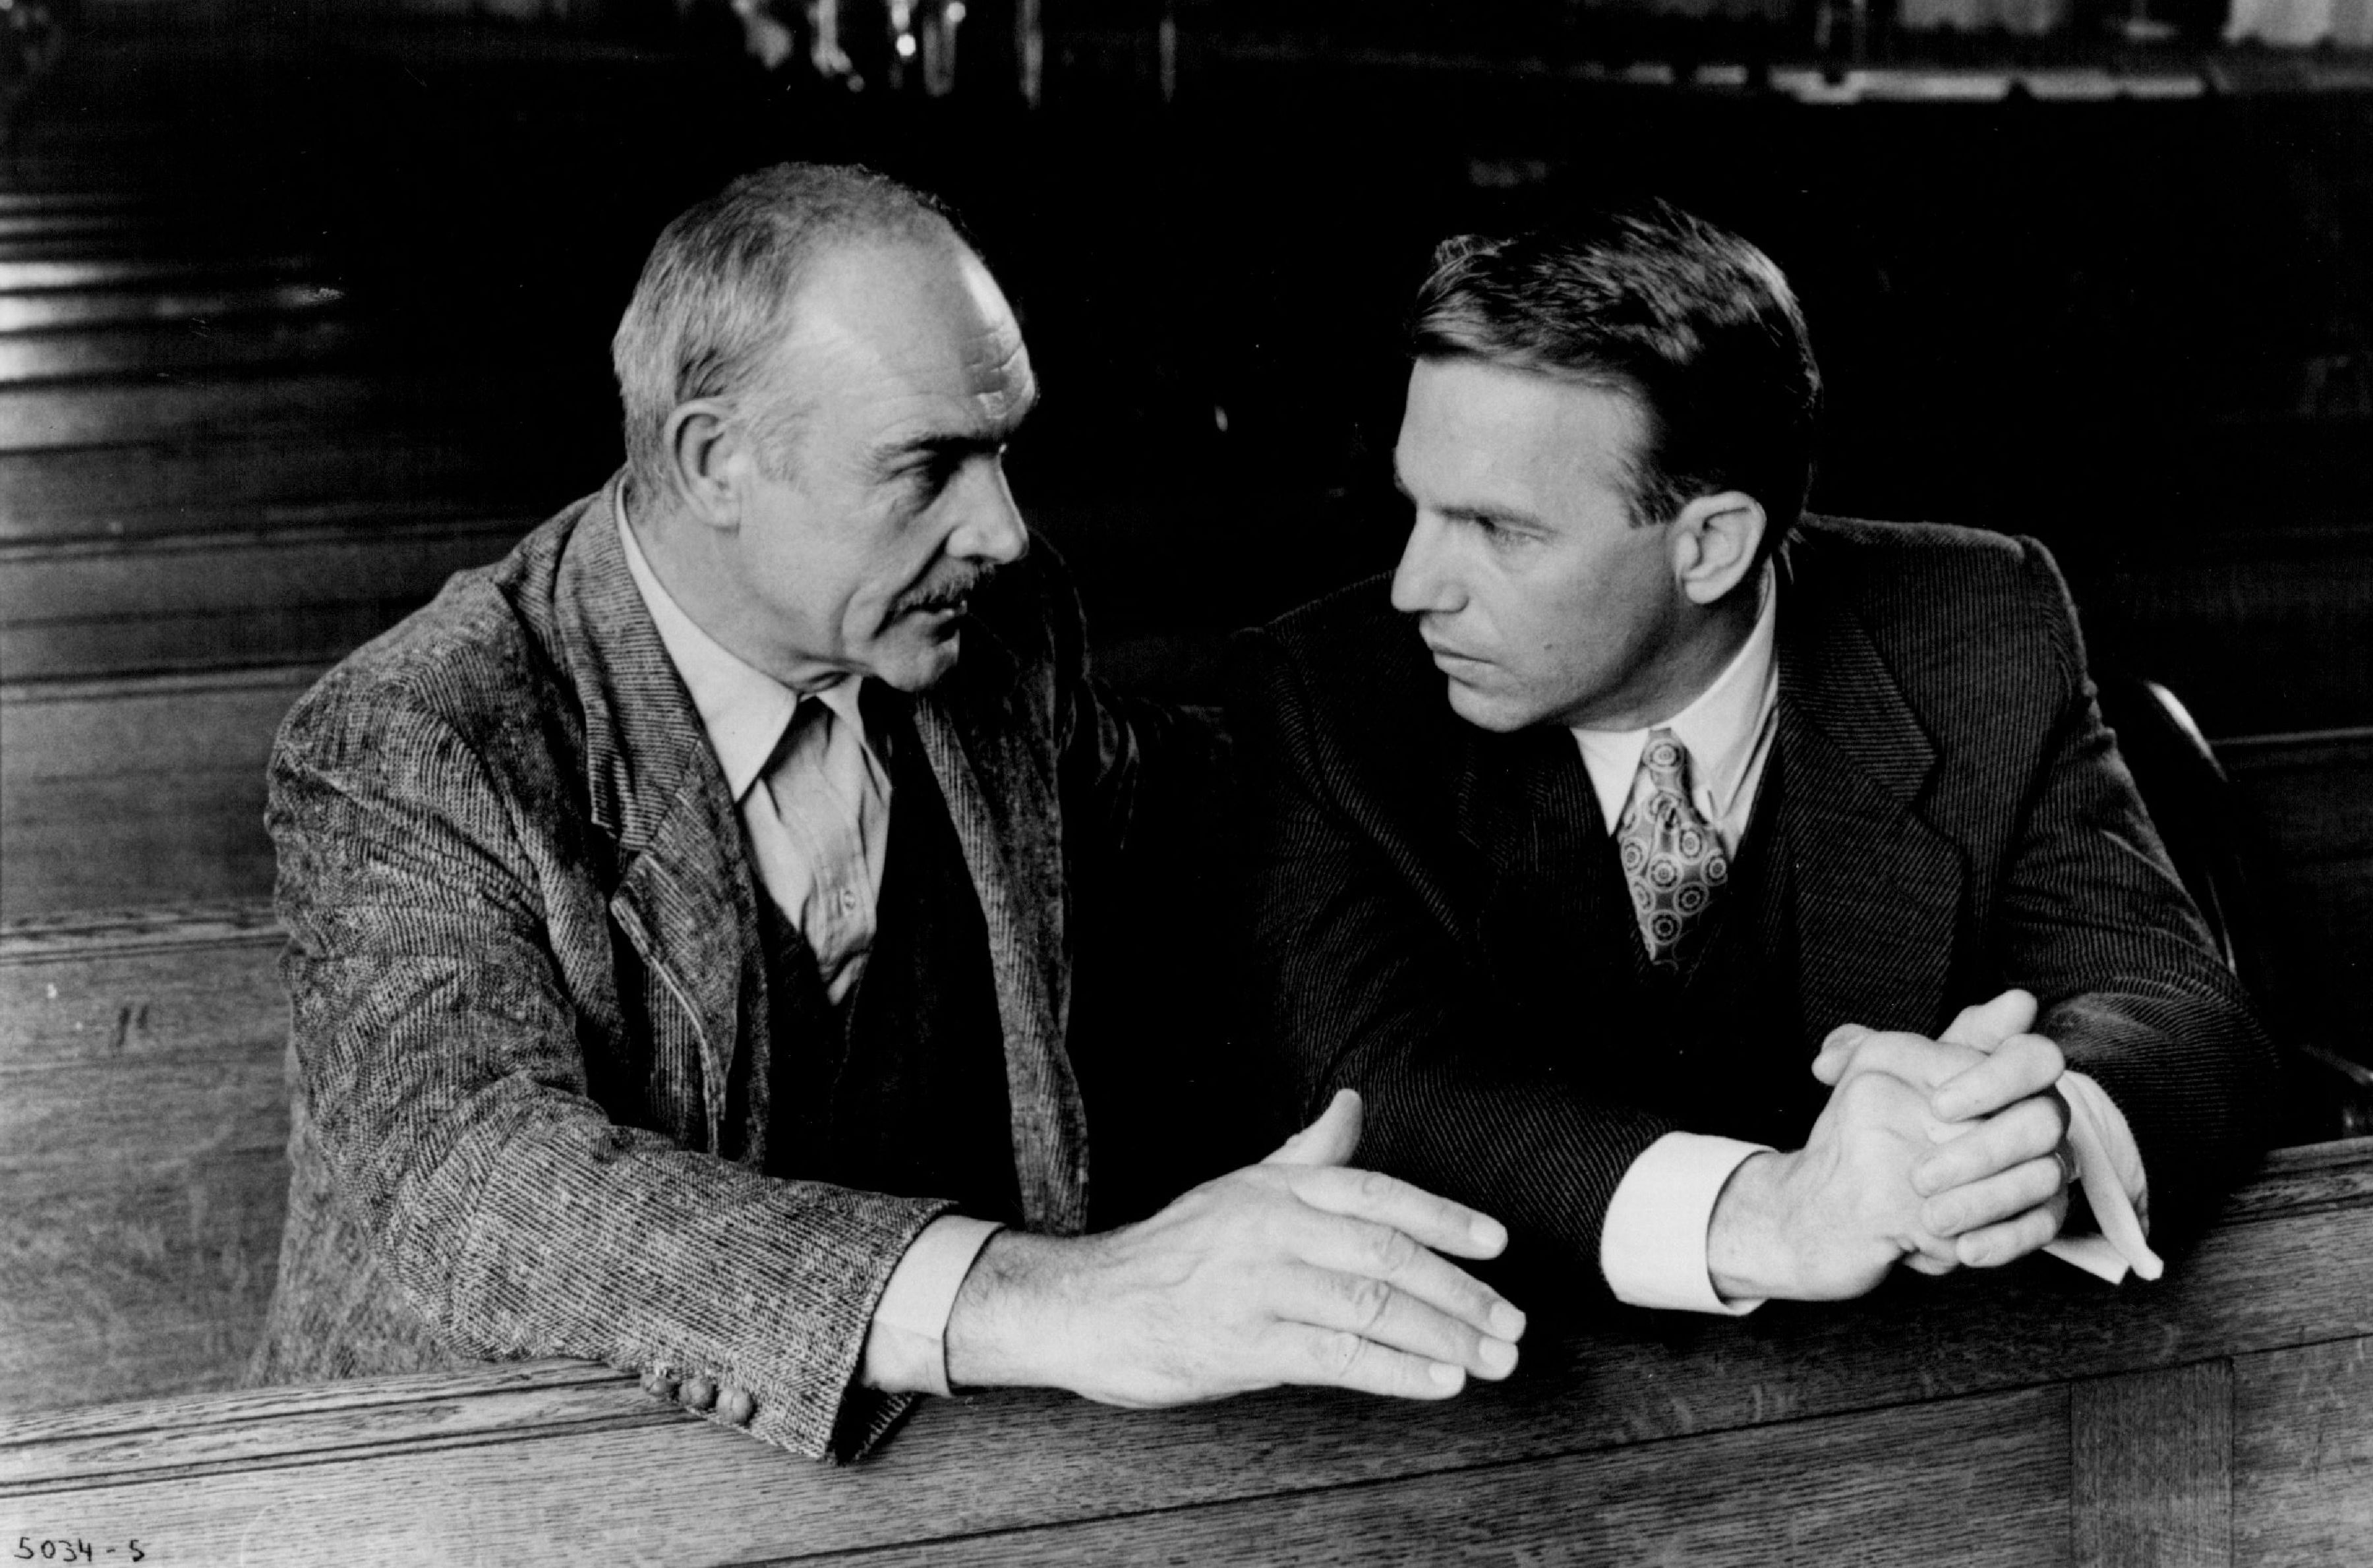 Sean Connery and Kevin Costner in